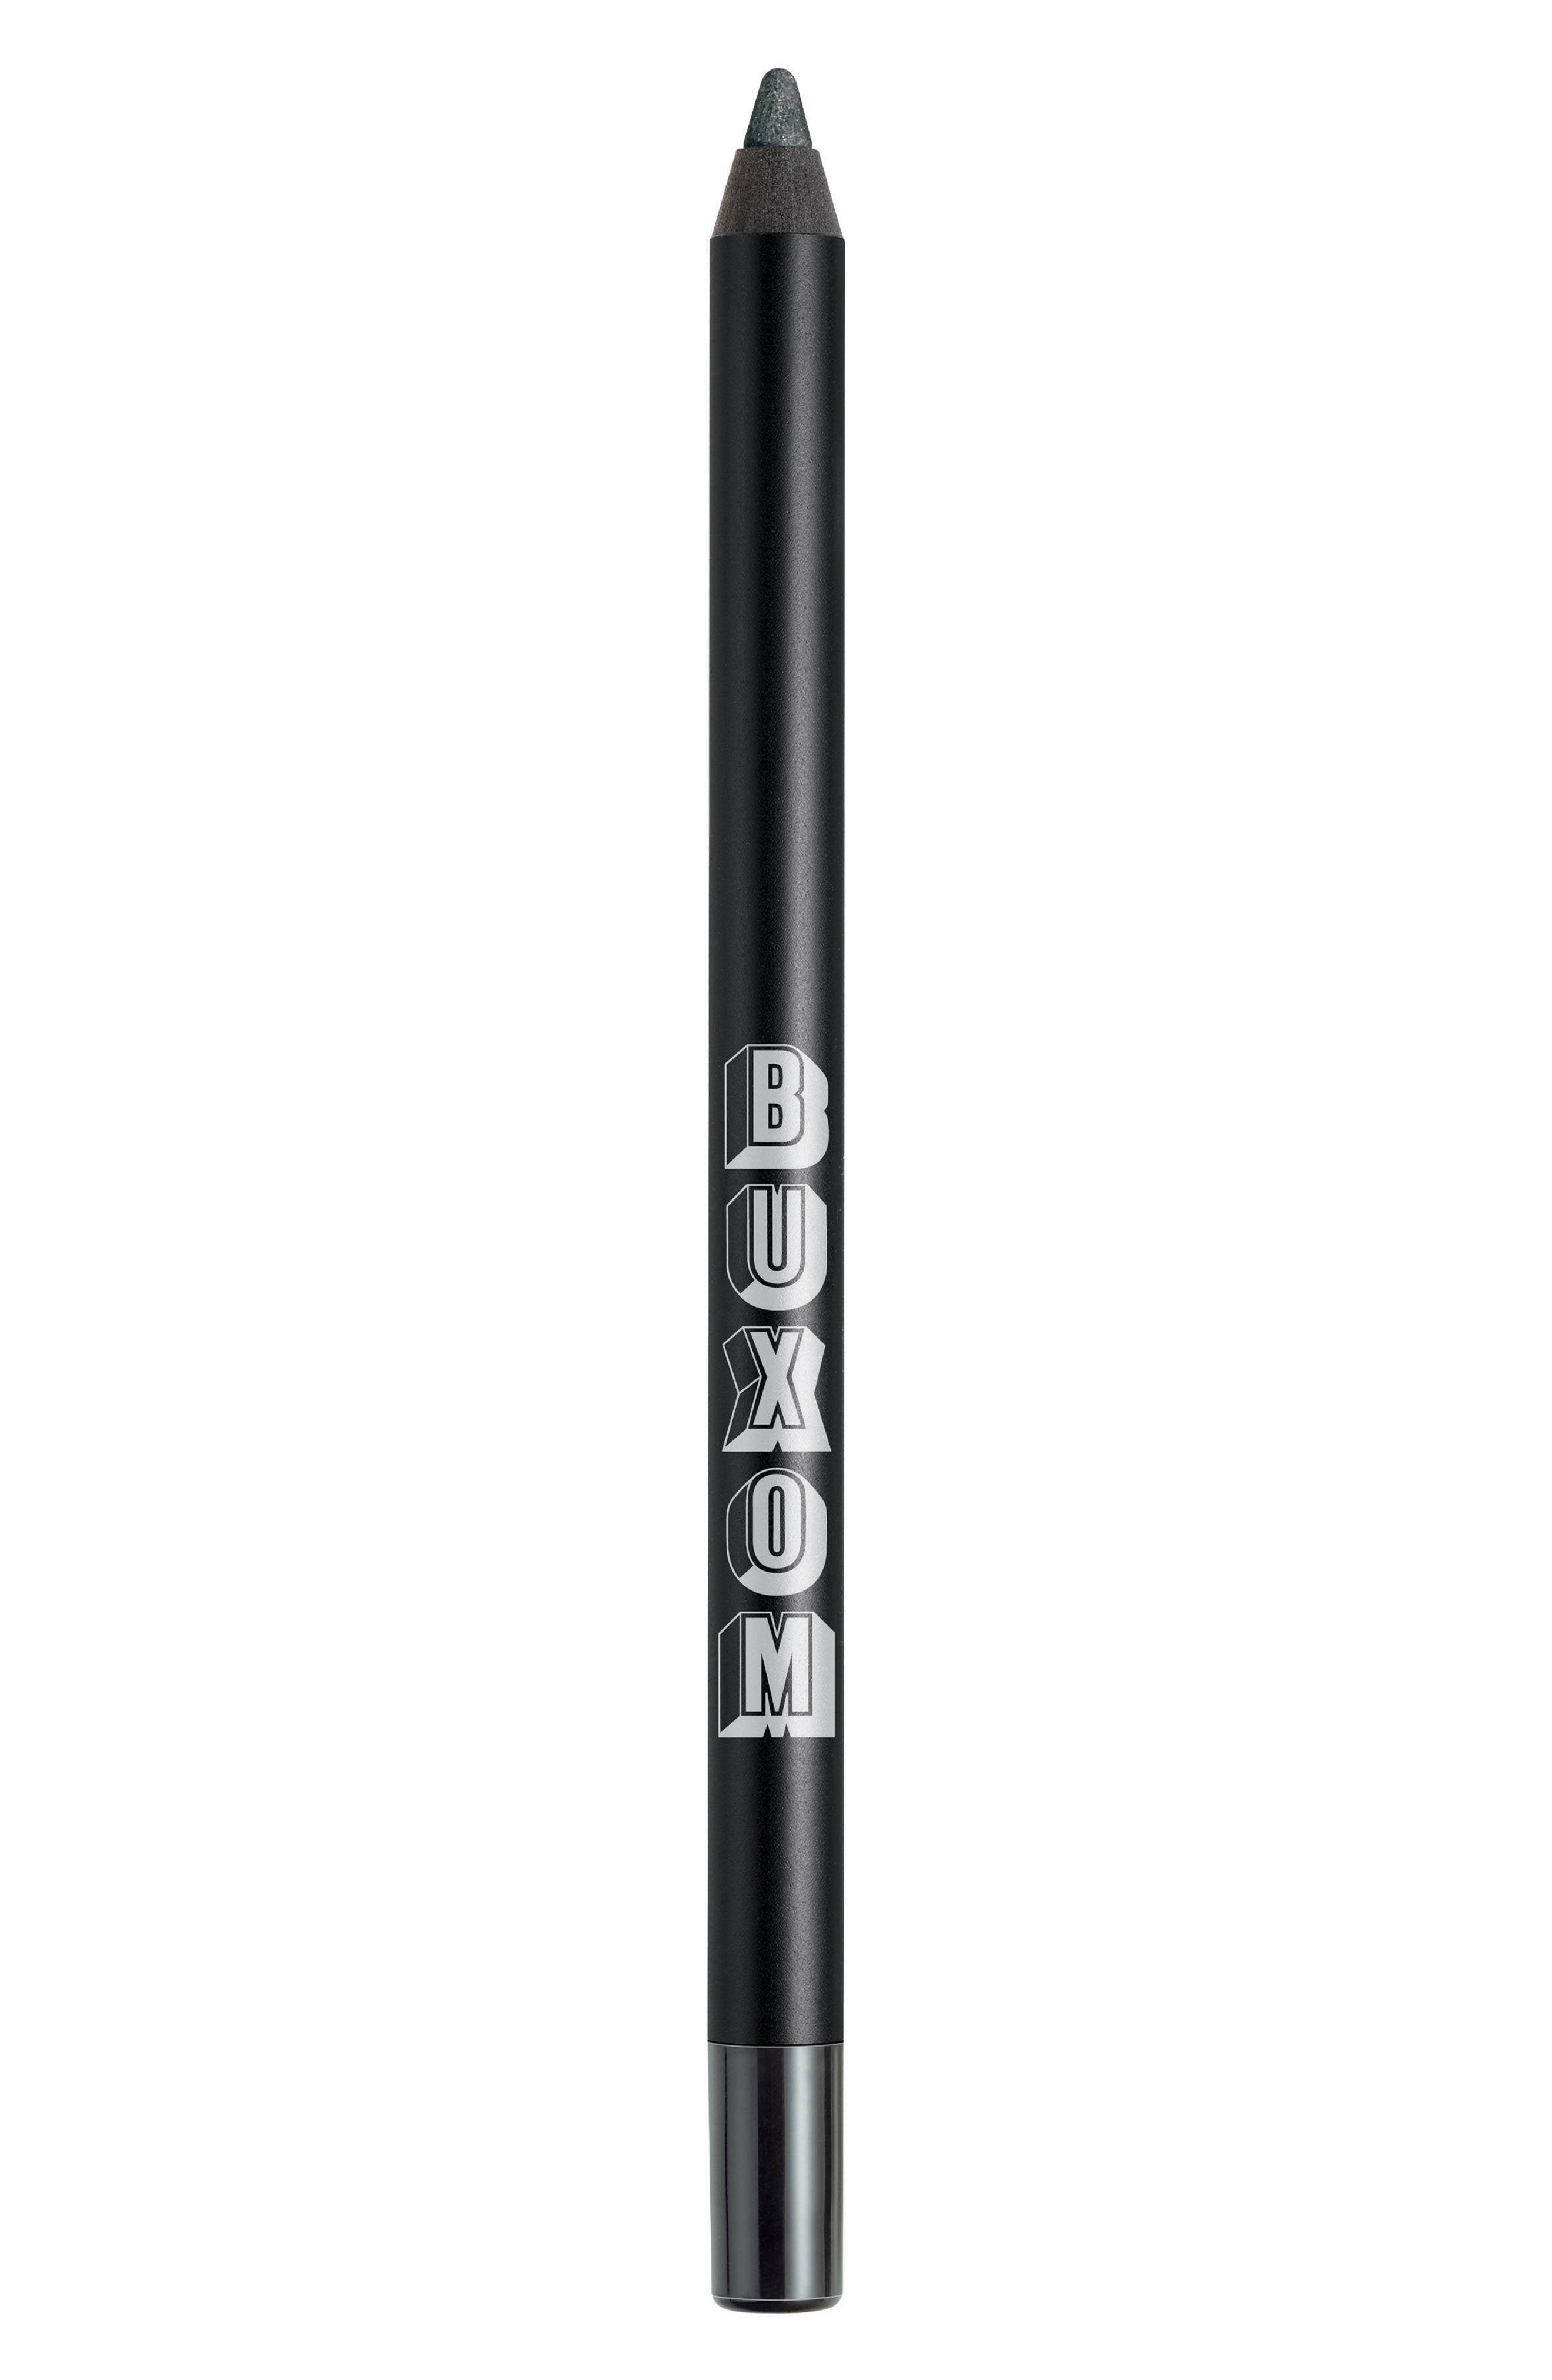 Buxom Hold The Line Waterproof Eyeliner - I Will Be Waiting